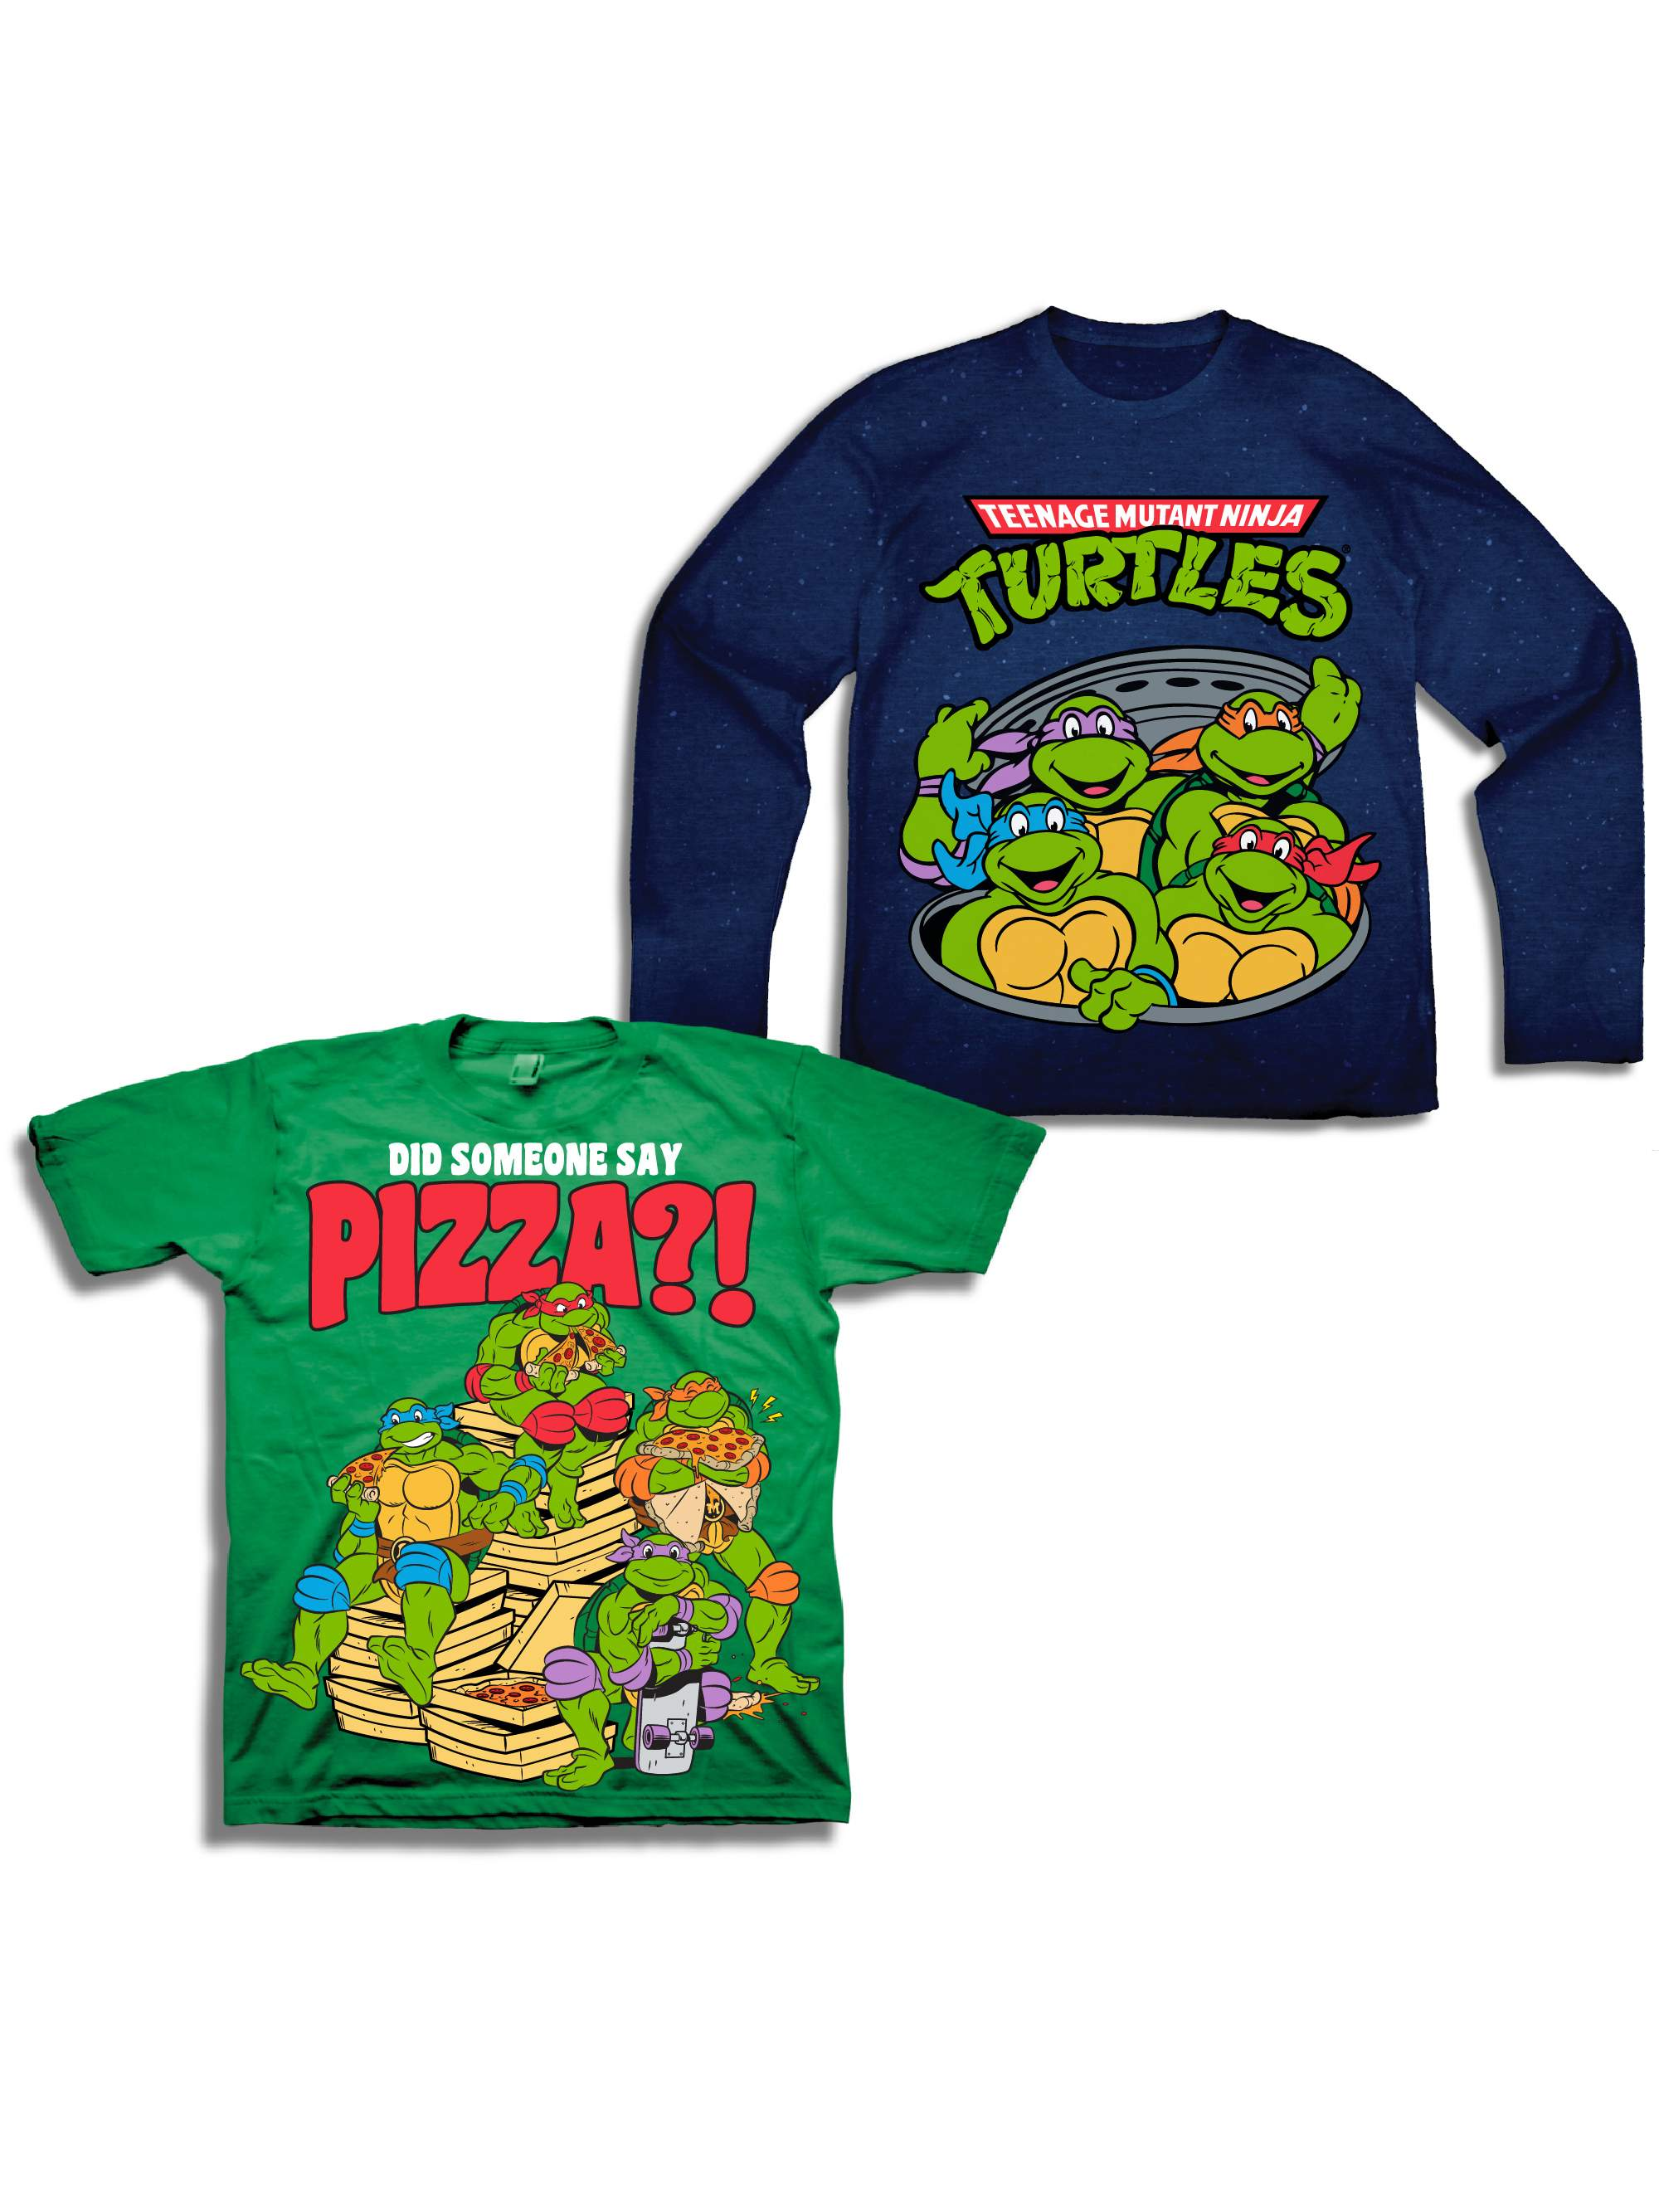 Teenage Mutant Ninja Turtles Long Sleeve T-shirt & Short Sleeve T-shirt, 2-pack (Toddler Boys)